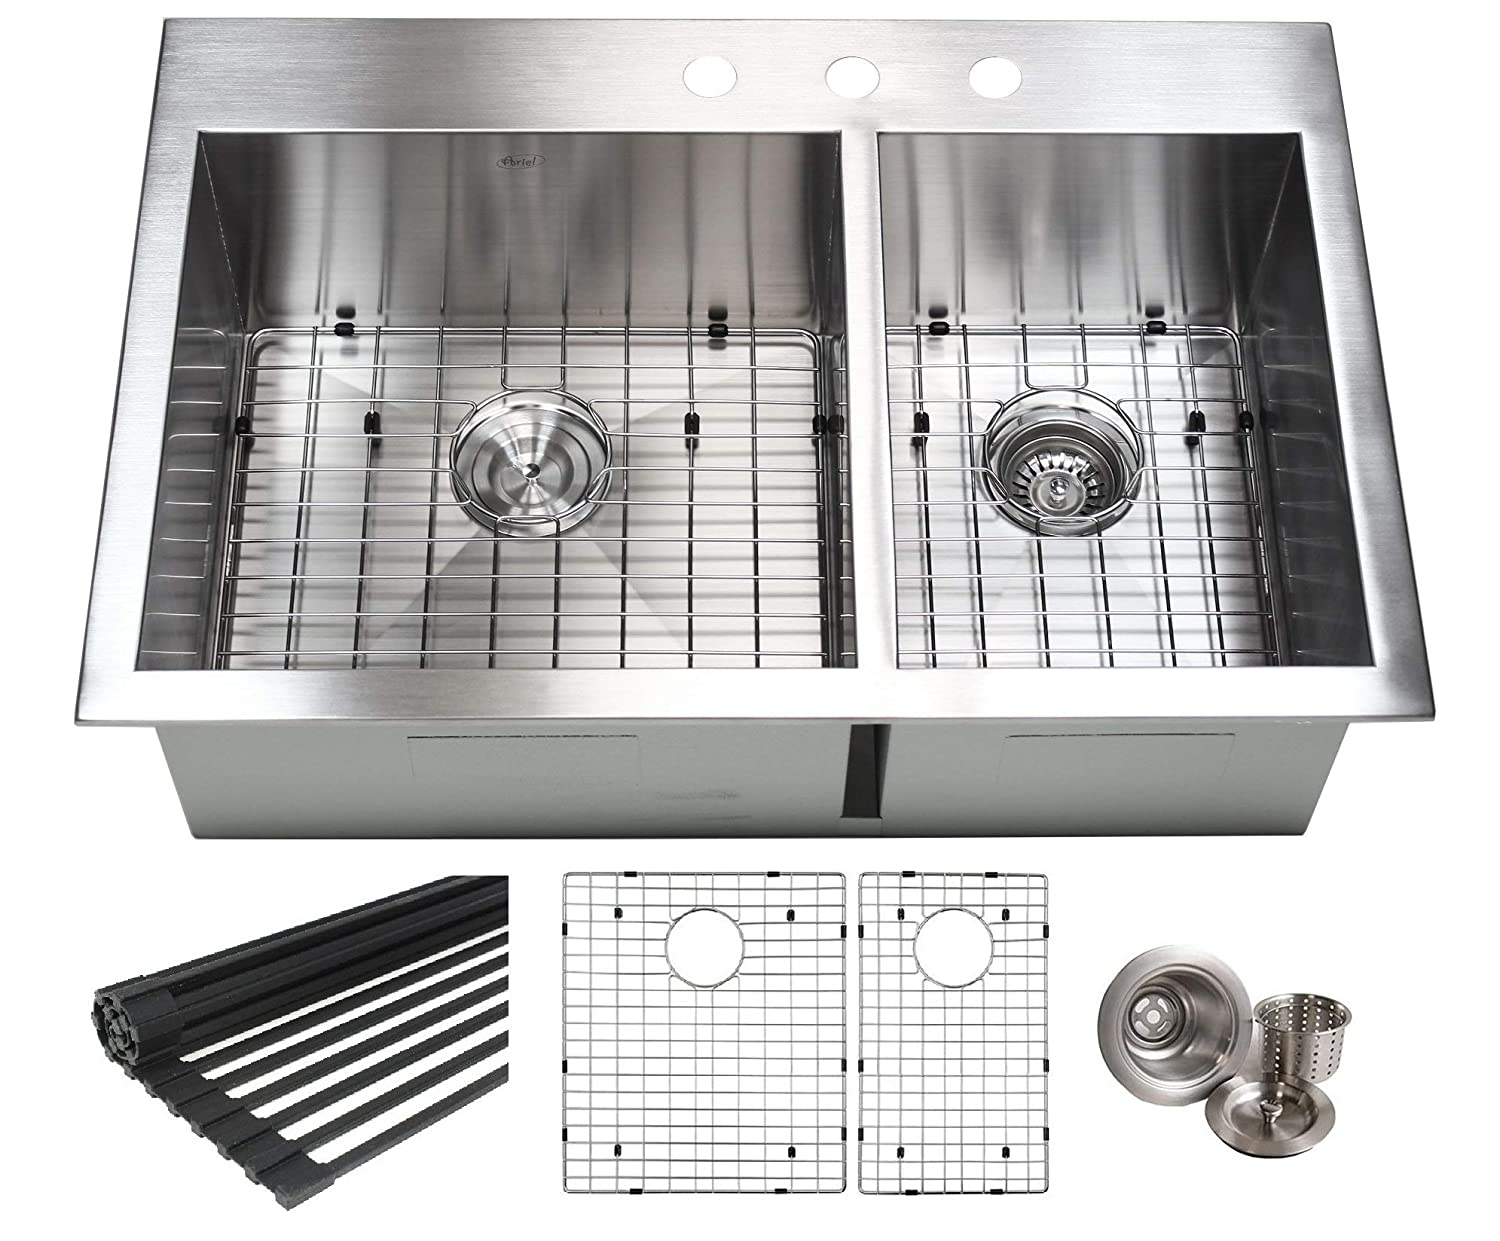 33 INCH 60 40 Zero Radius Design 16 Gauge Topmount Drop In Over the Counter Large Double Bowl 5050 Stainless Steel Kitchen Sink Premium Package 33 INCH 60 40 KKR-FT3322-6040